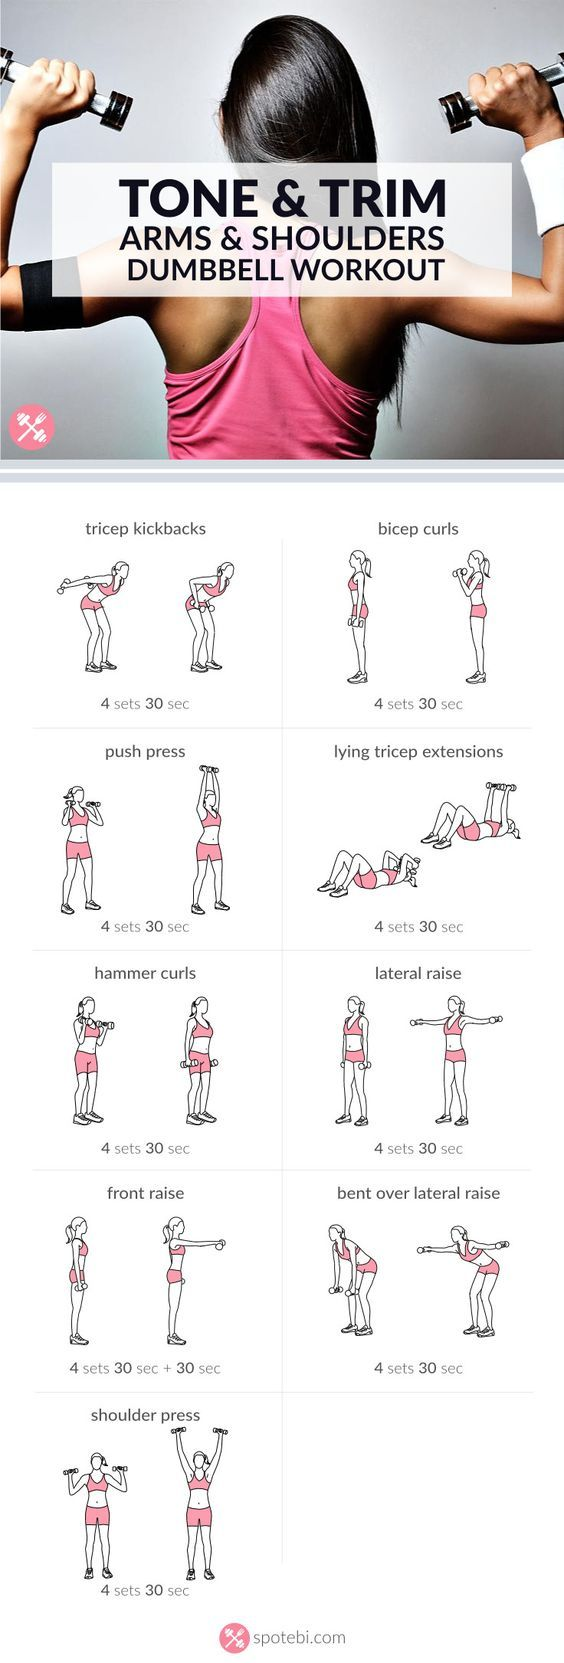 Get rid of arm fat and tone sleek muscles with the help of these dumbbell exercises. Sculpt, tone and firm your biceps, triceps and shoulders in no time! http://www.spotebi.com/workout-routines/upper-body-dumbbell-exercises-biceps-triceps-shoulders-workout/: